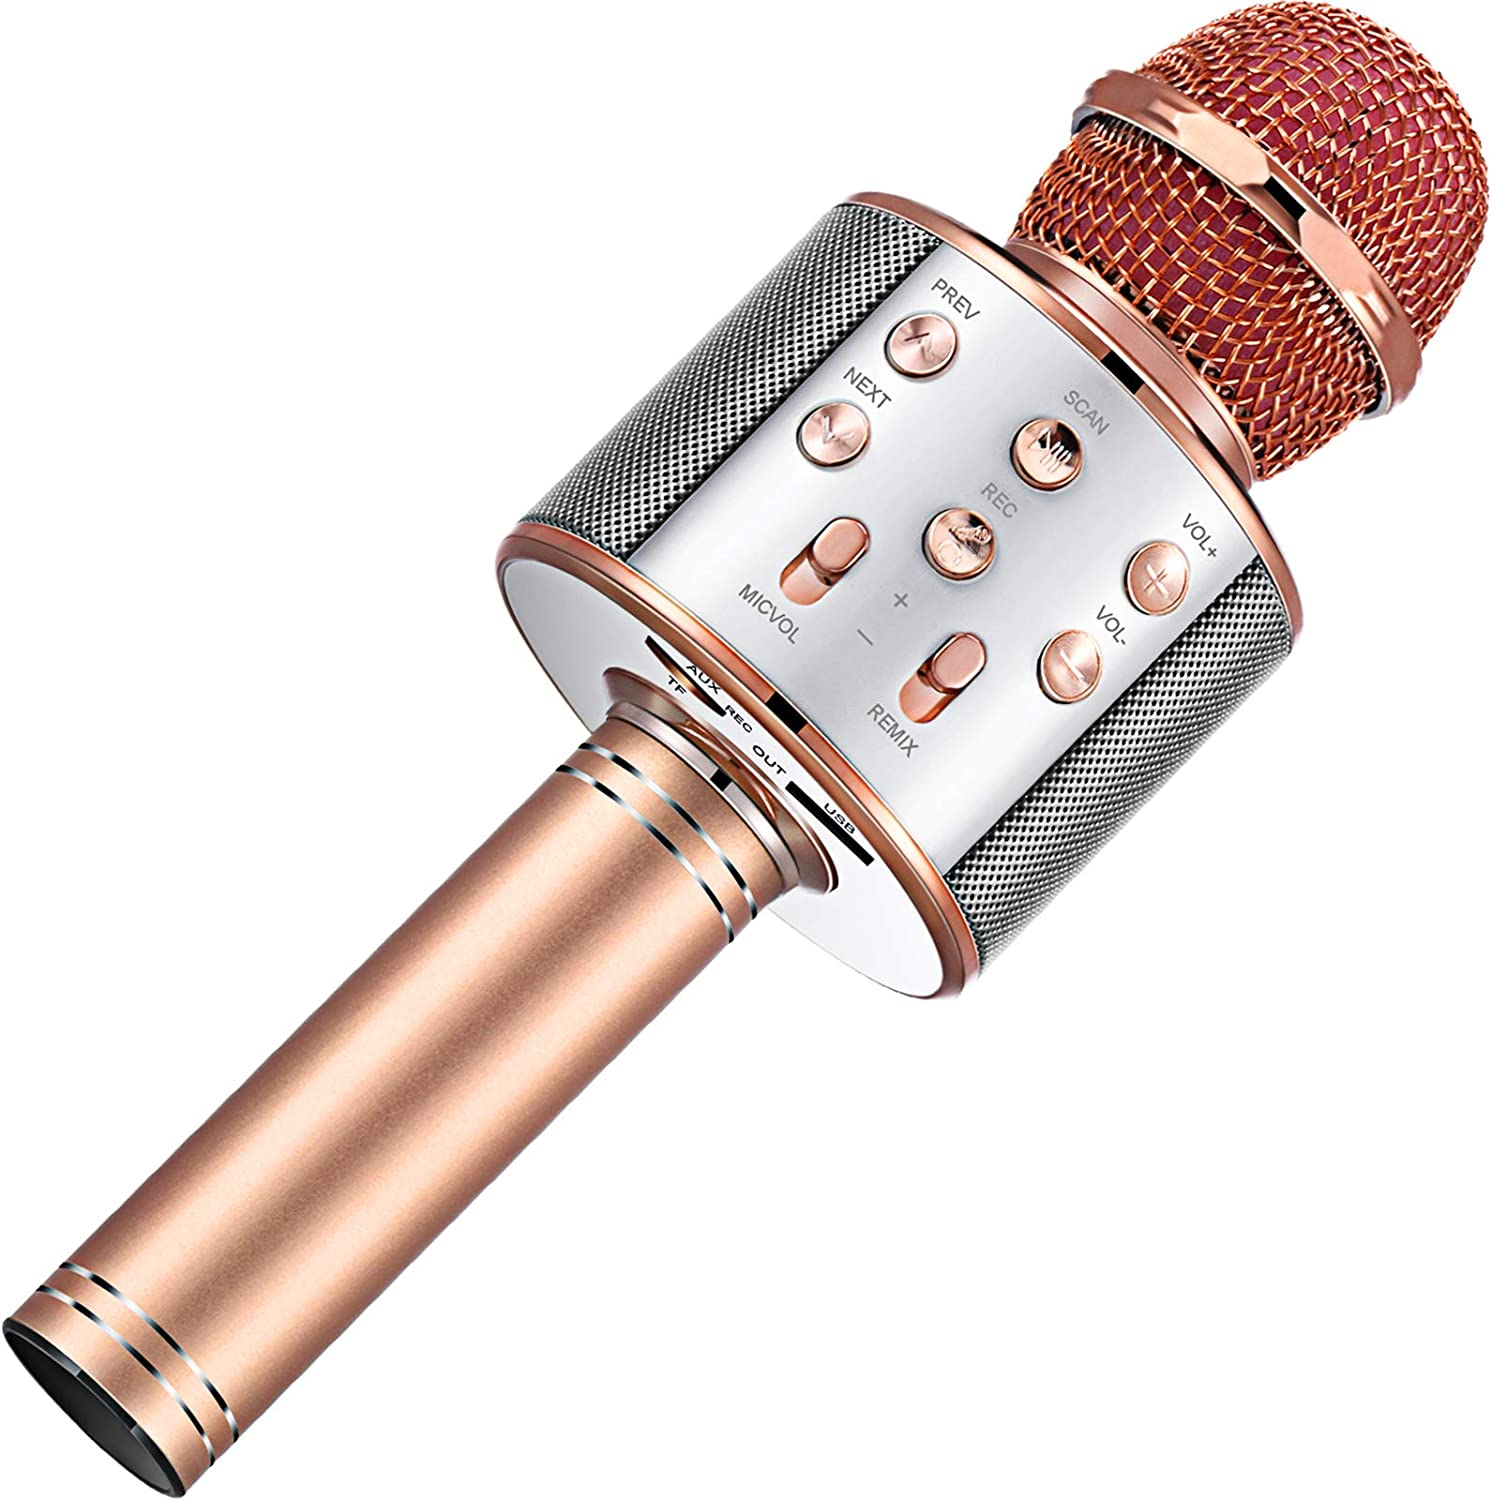 Wireless Karaoke Bluetooth Microphone Handheld Karaoke Speaker 3-in-1 Portable Microphone Christmas Birthday Home Party Supplies for Mobile Phone Laptop, Rose Gold